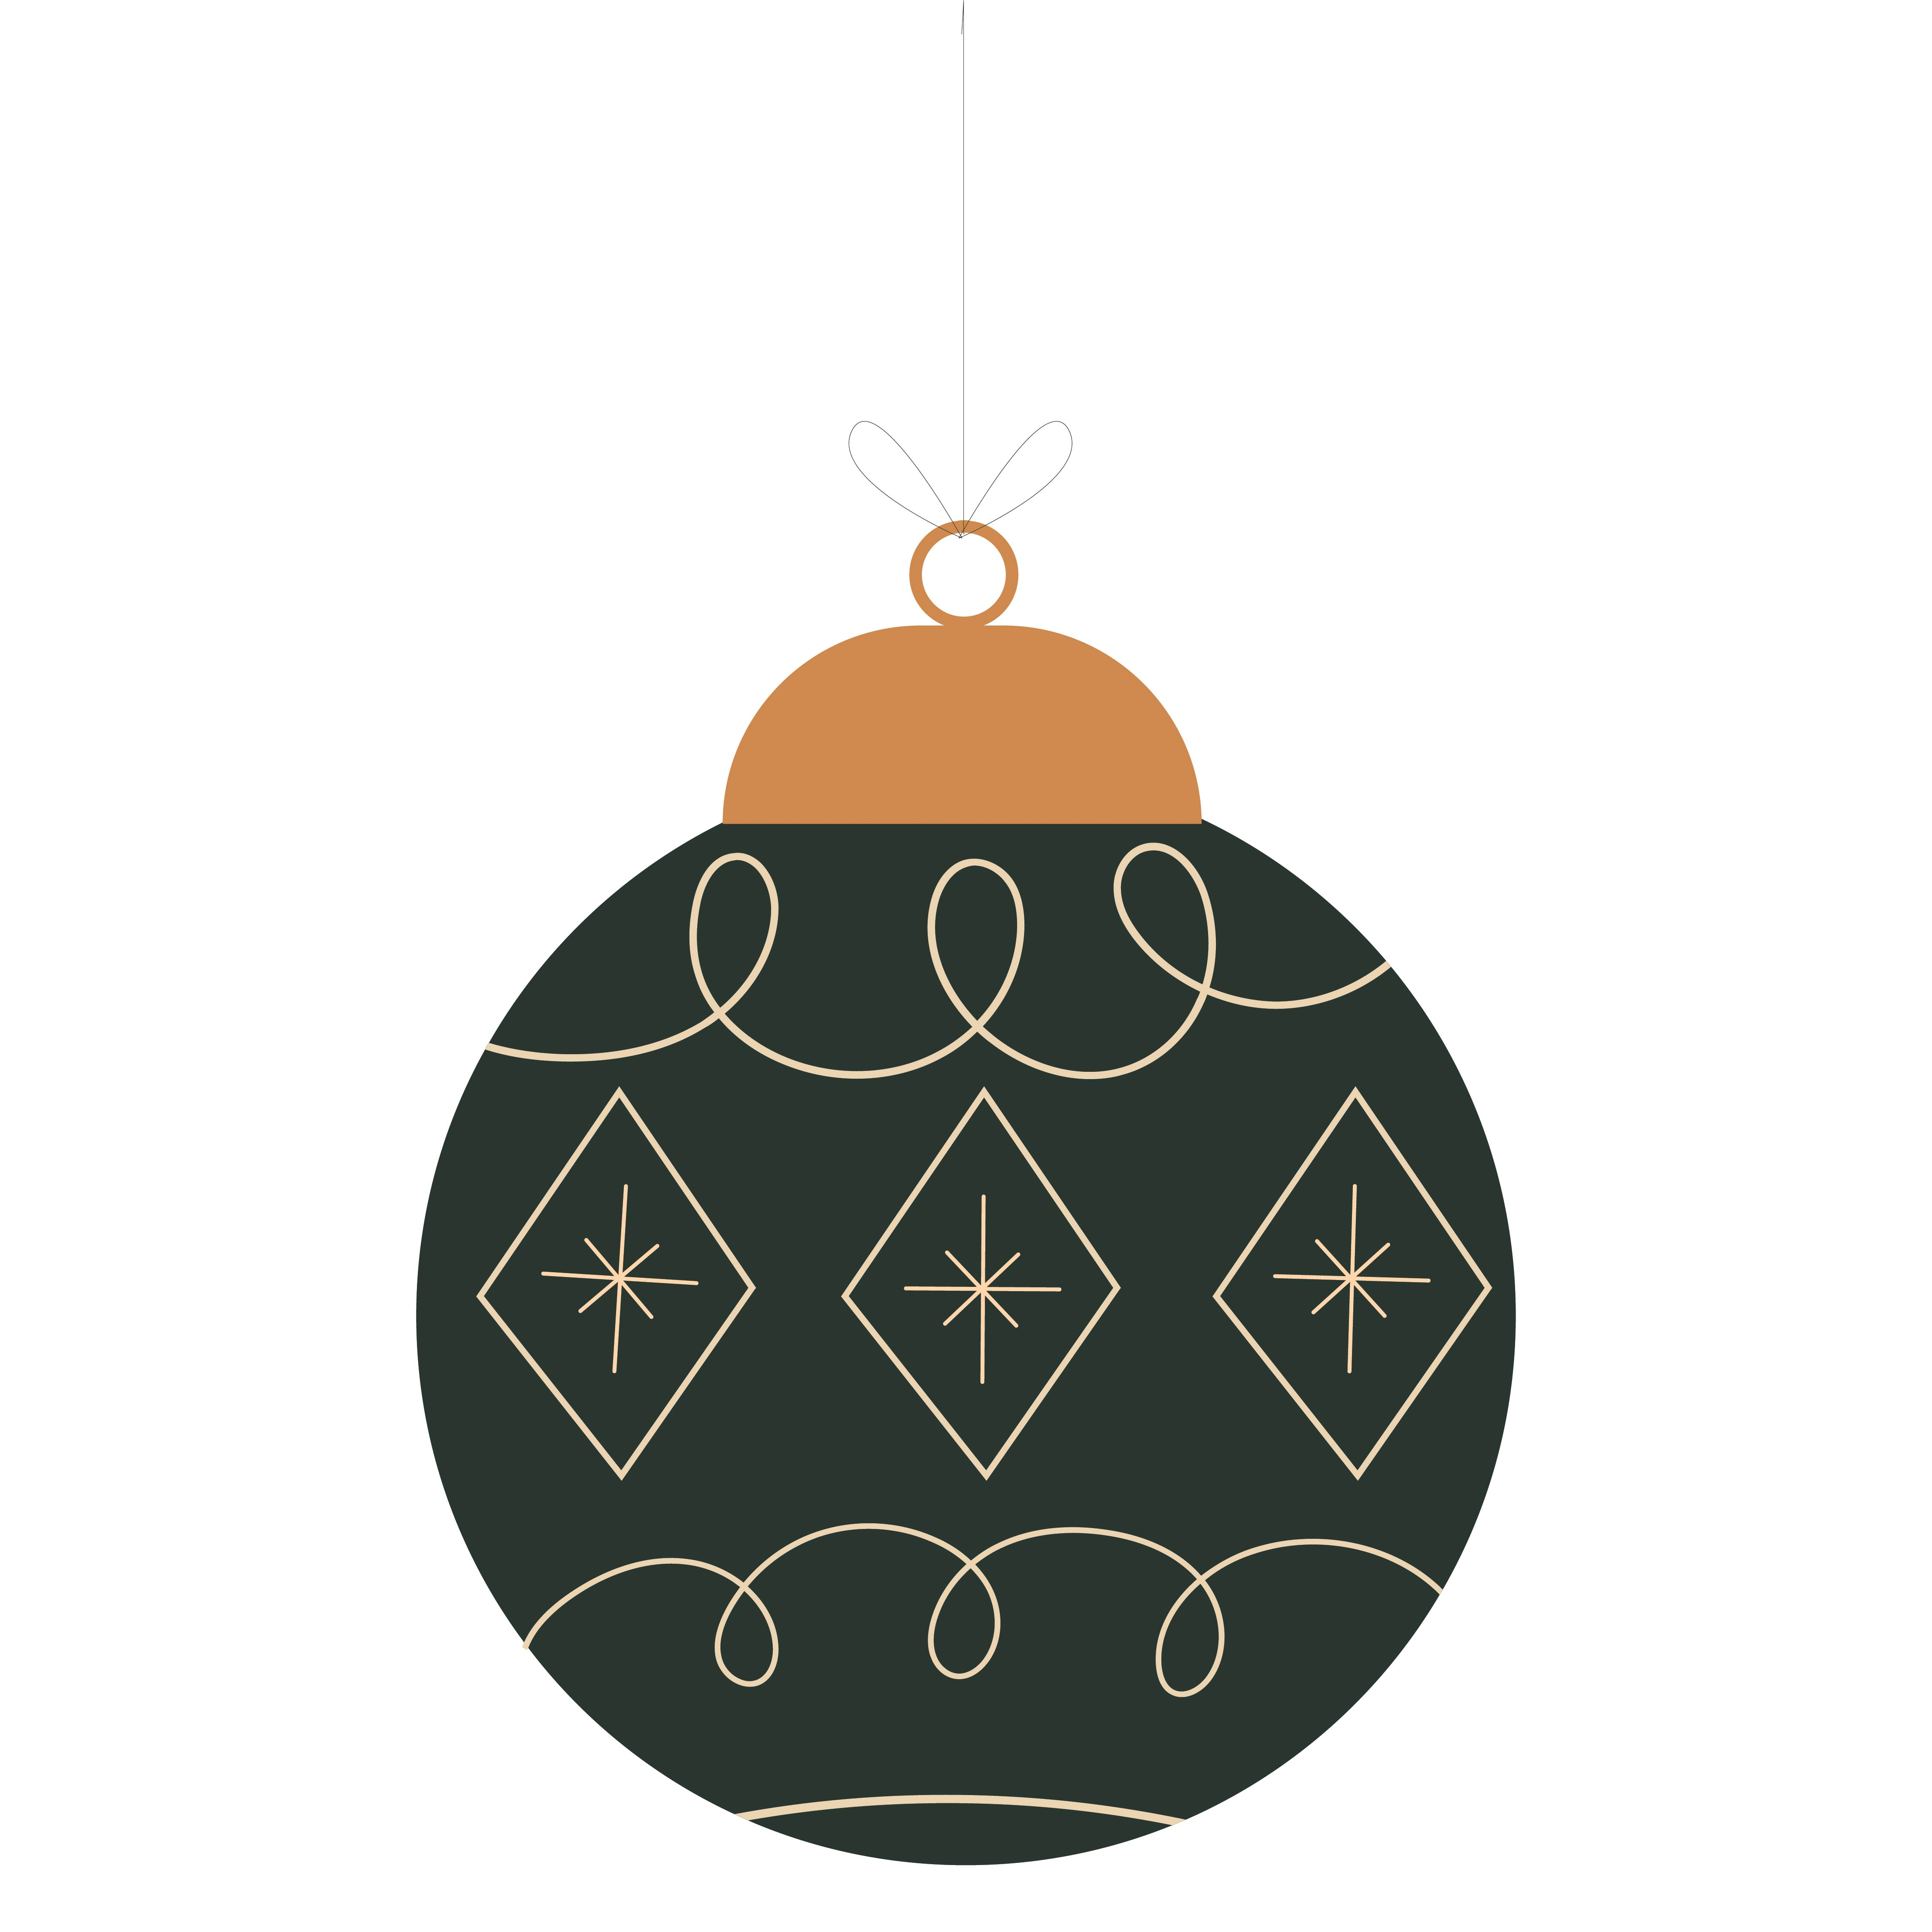 8 Images of Christmas Ornament Stencils Printable